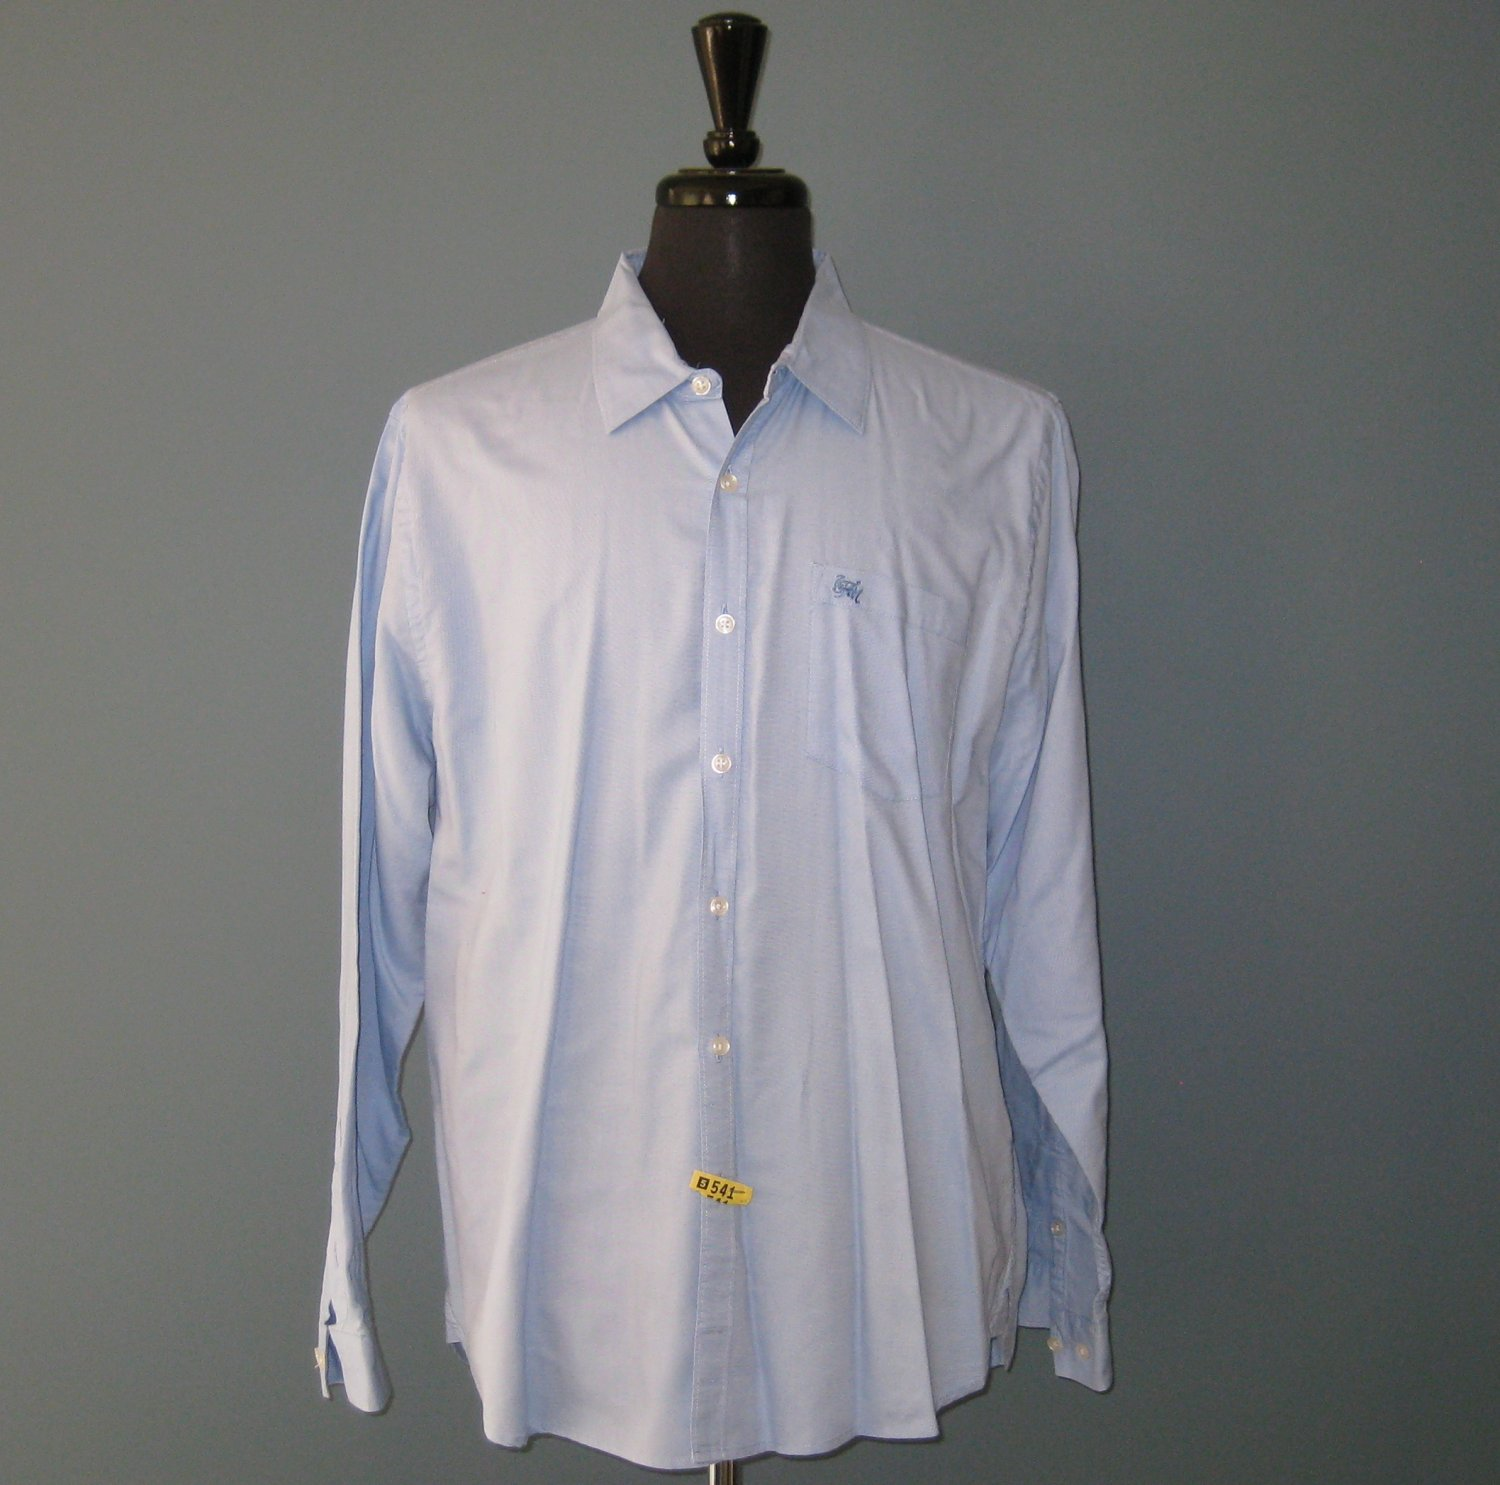 Pre-Owned 7 Seven For All Mankind Men's 100% Cotton Blue L/S Dress Shirt - XL